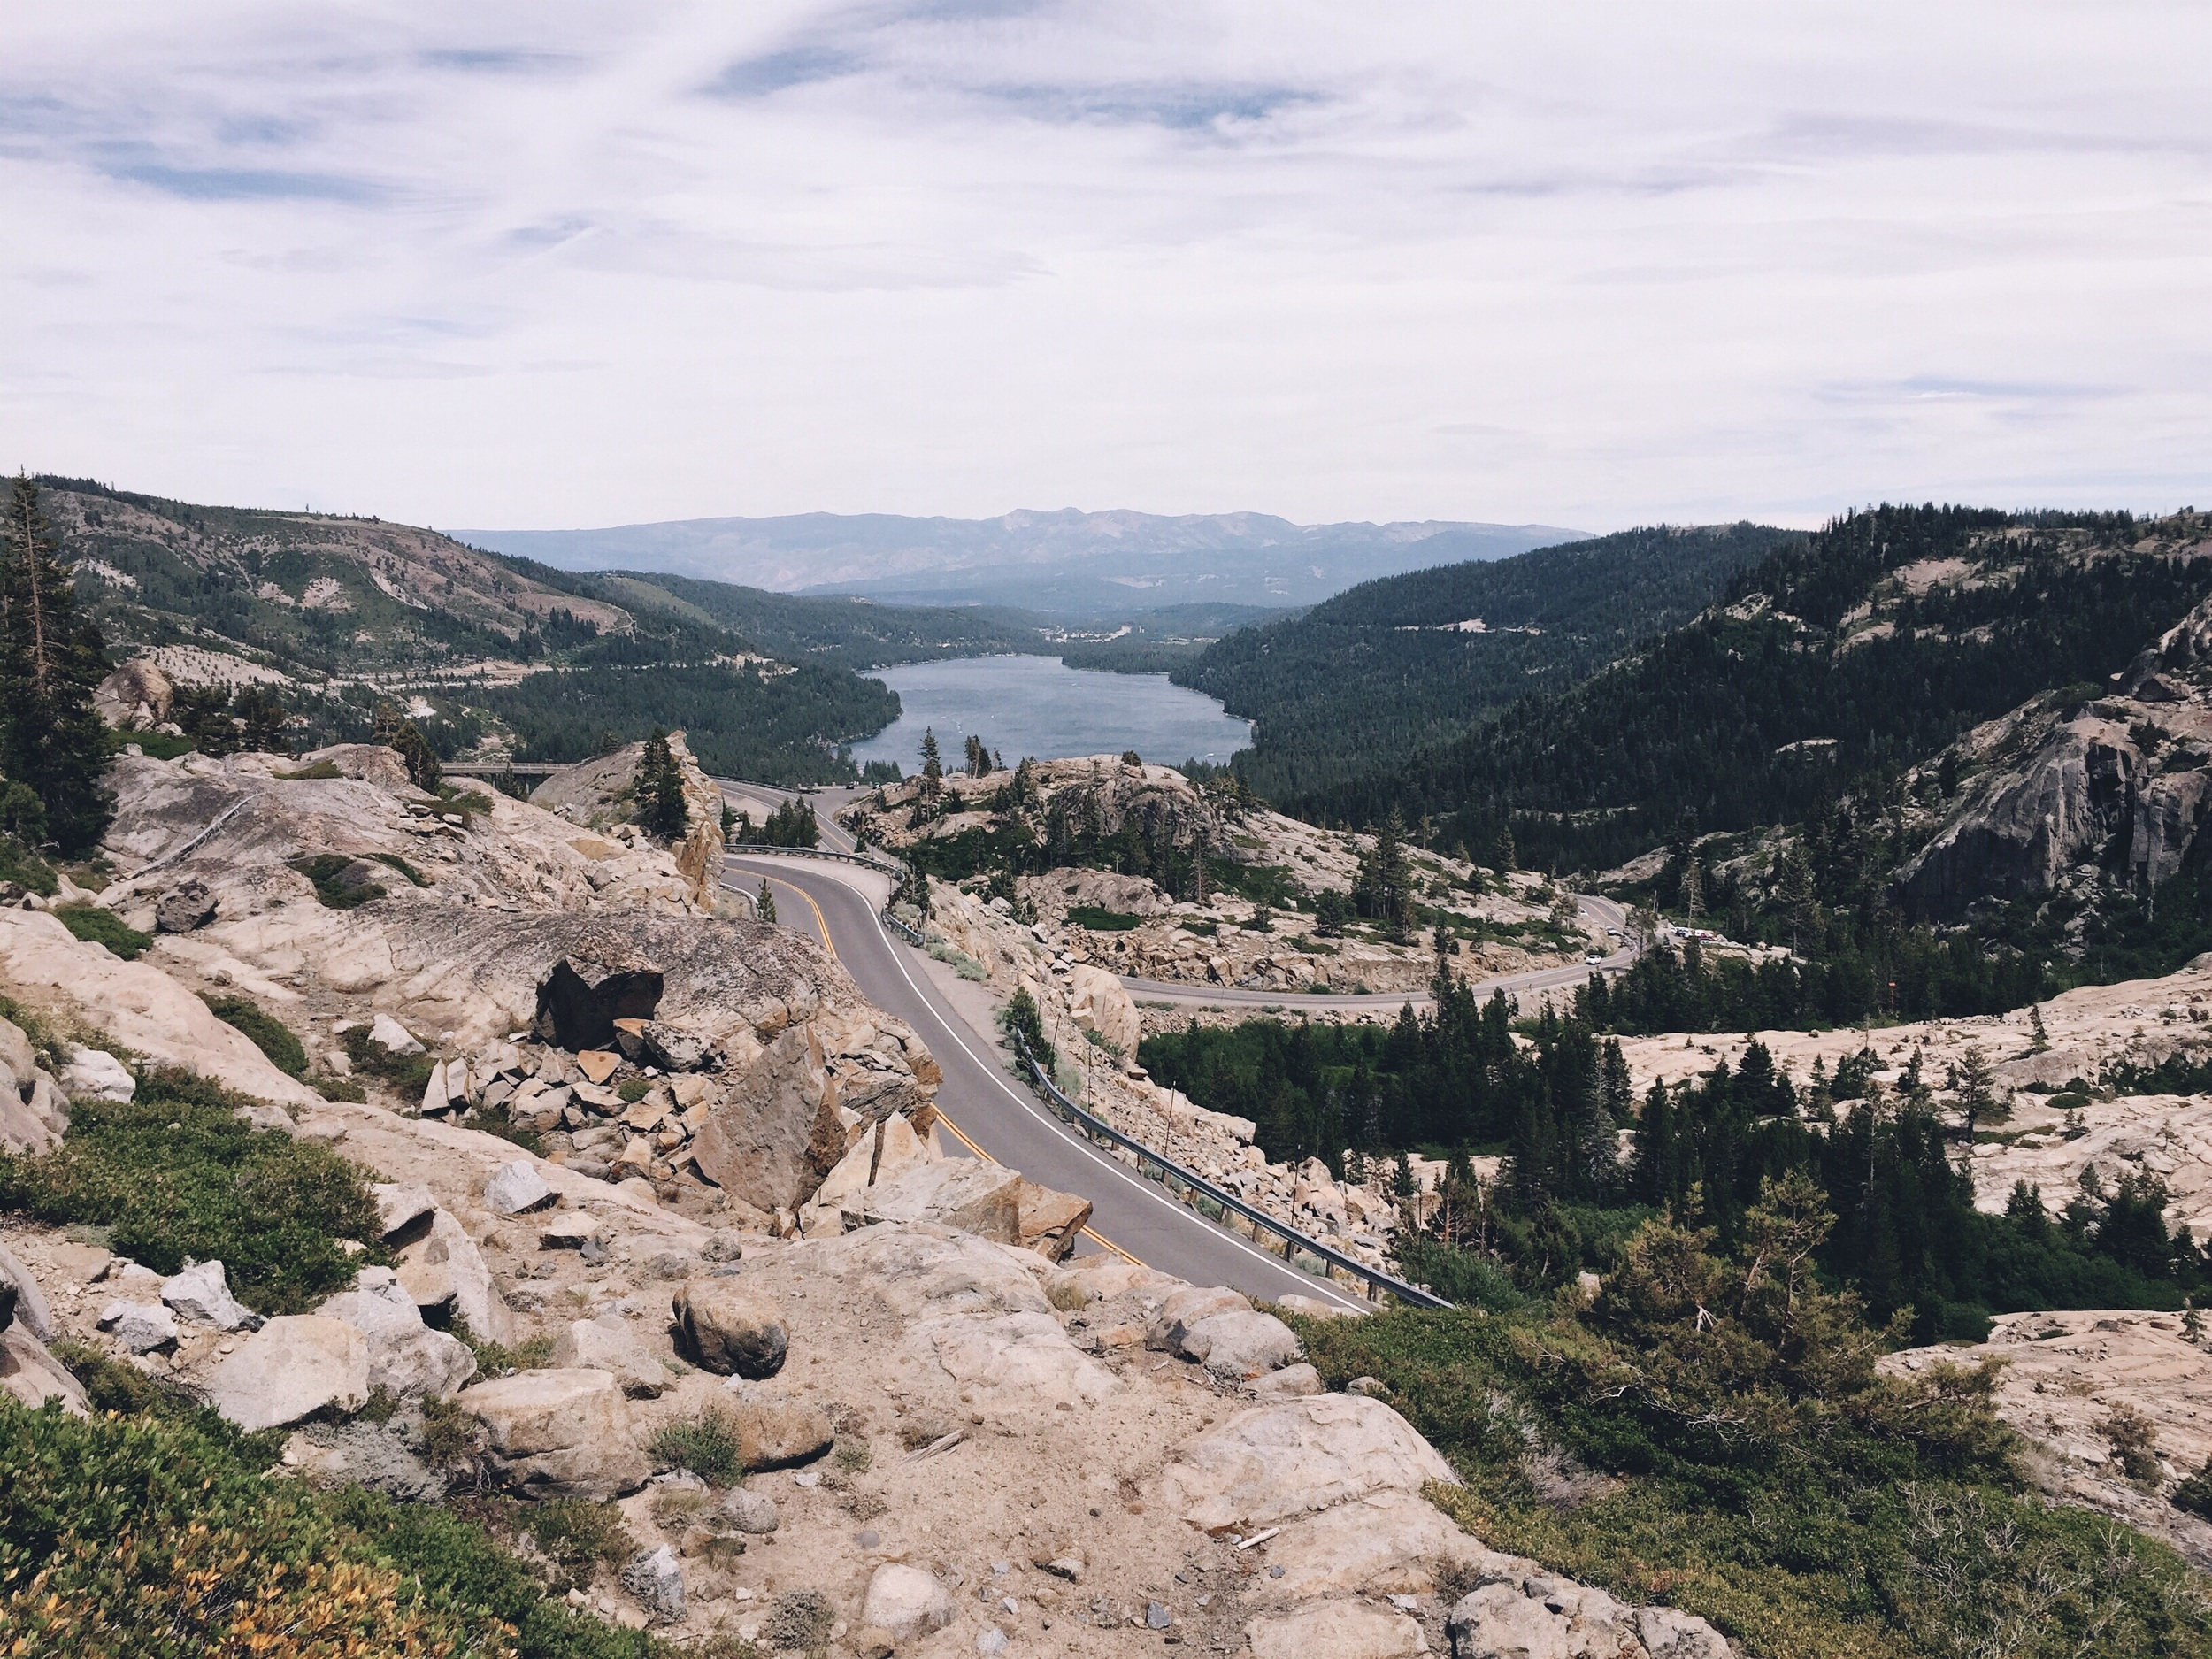 Donner lake down there.